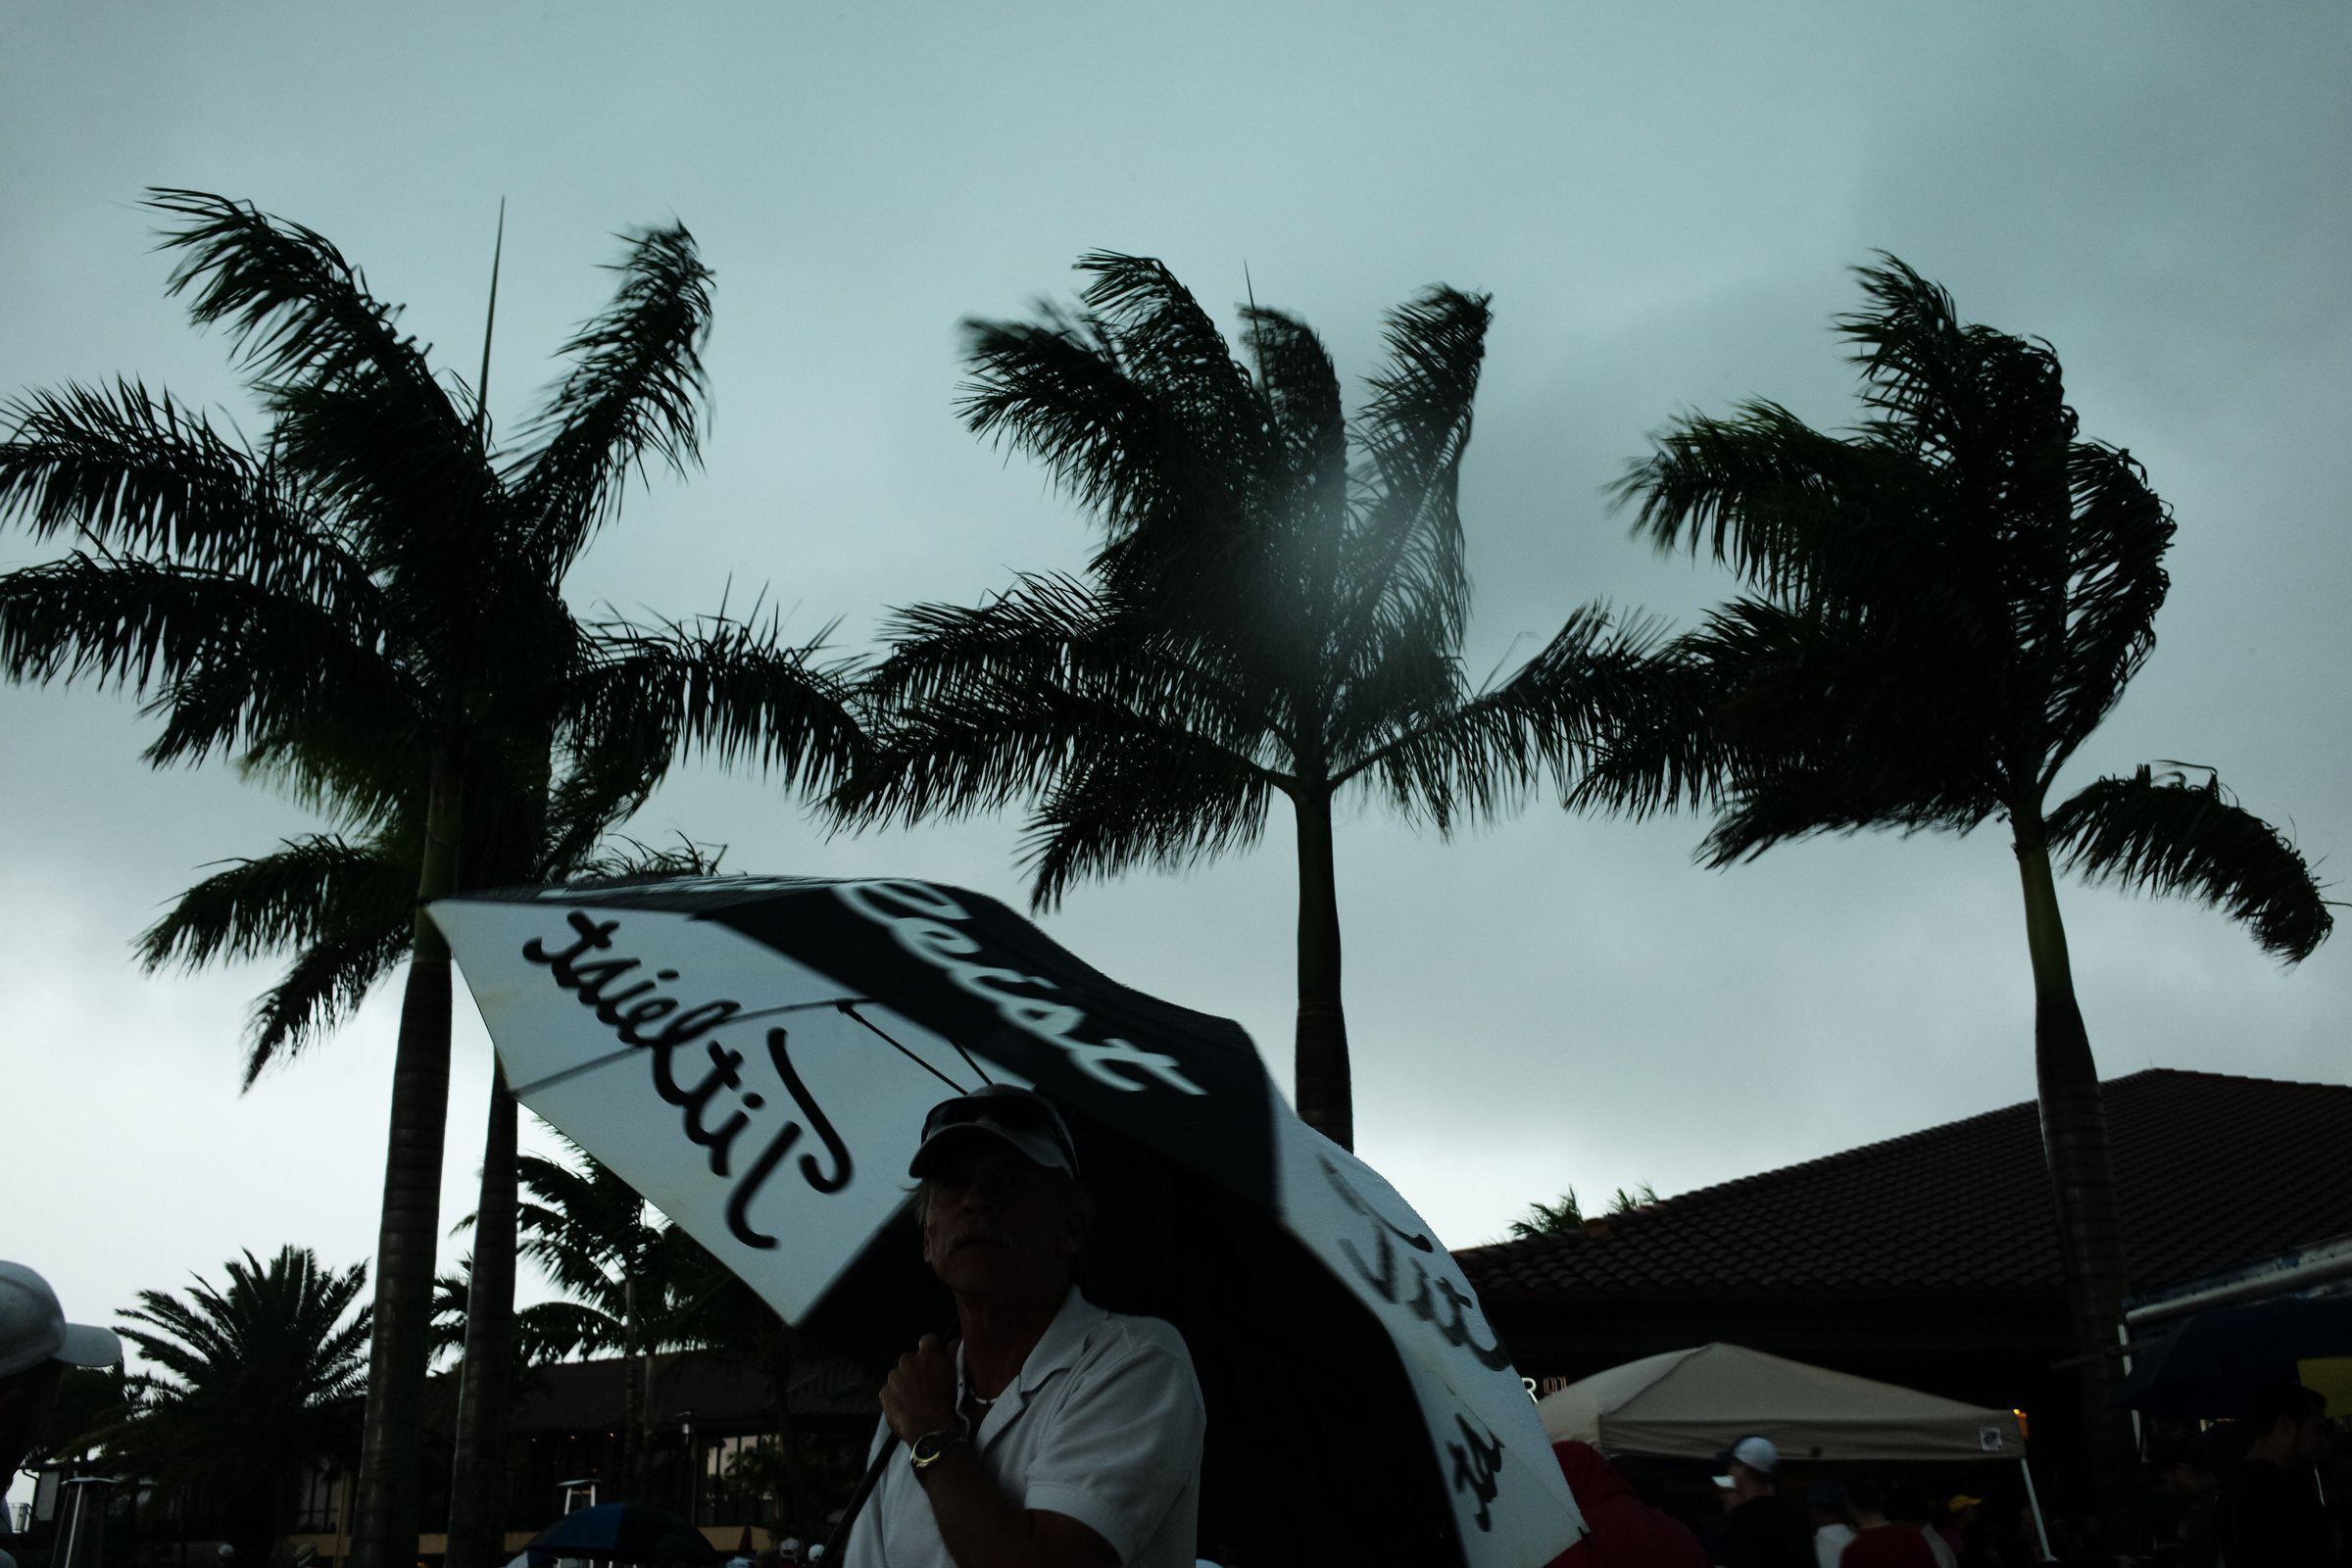 An umbrella struggles to keep its shape in heavy winds at the Honda Classic on Saturday.